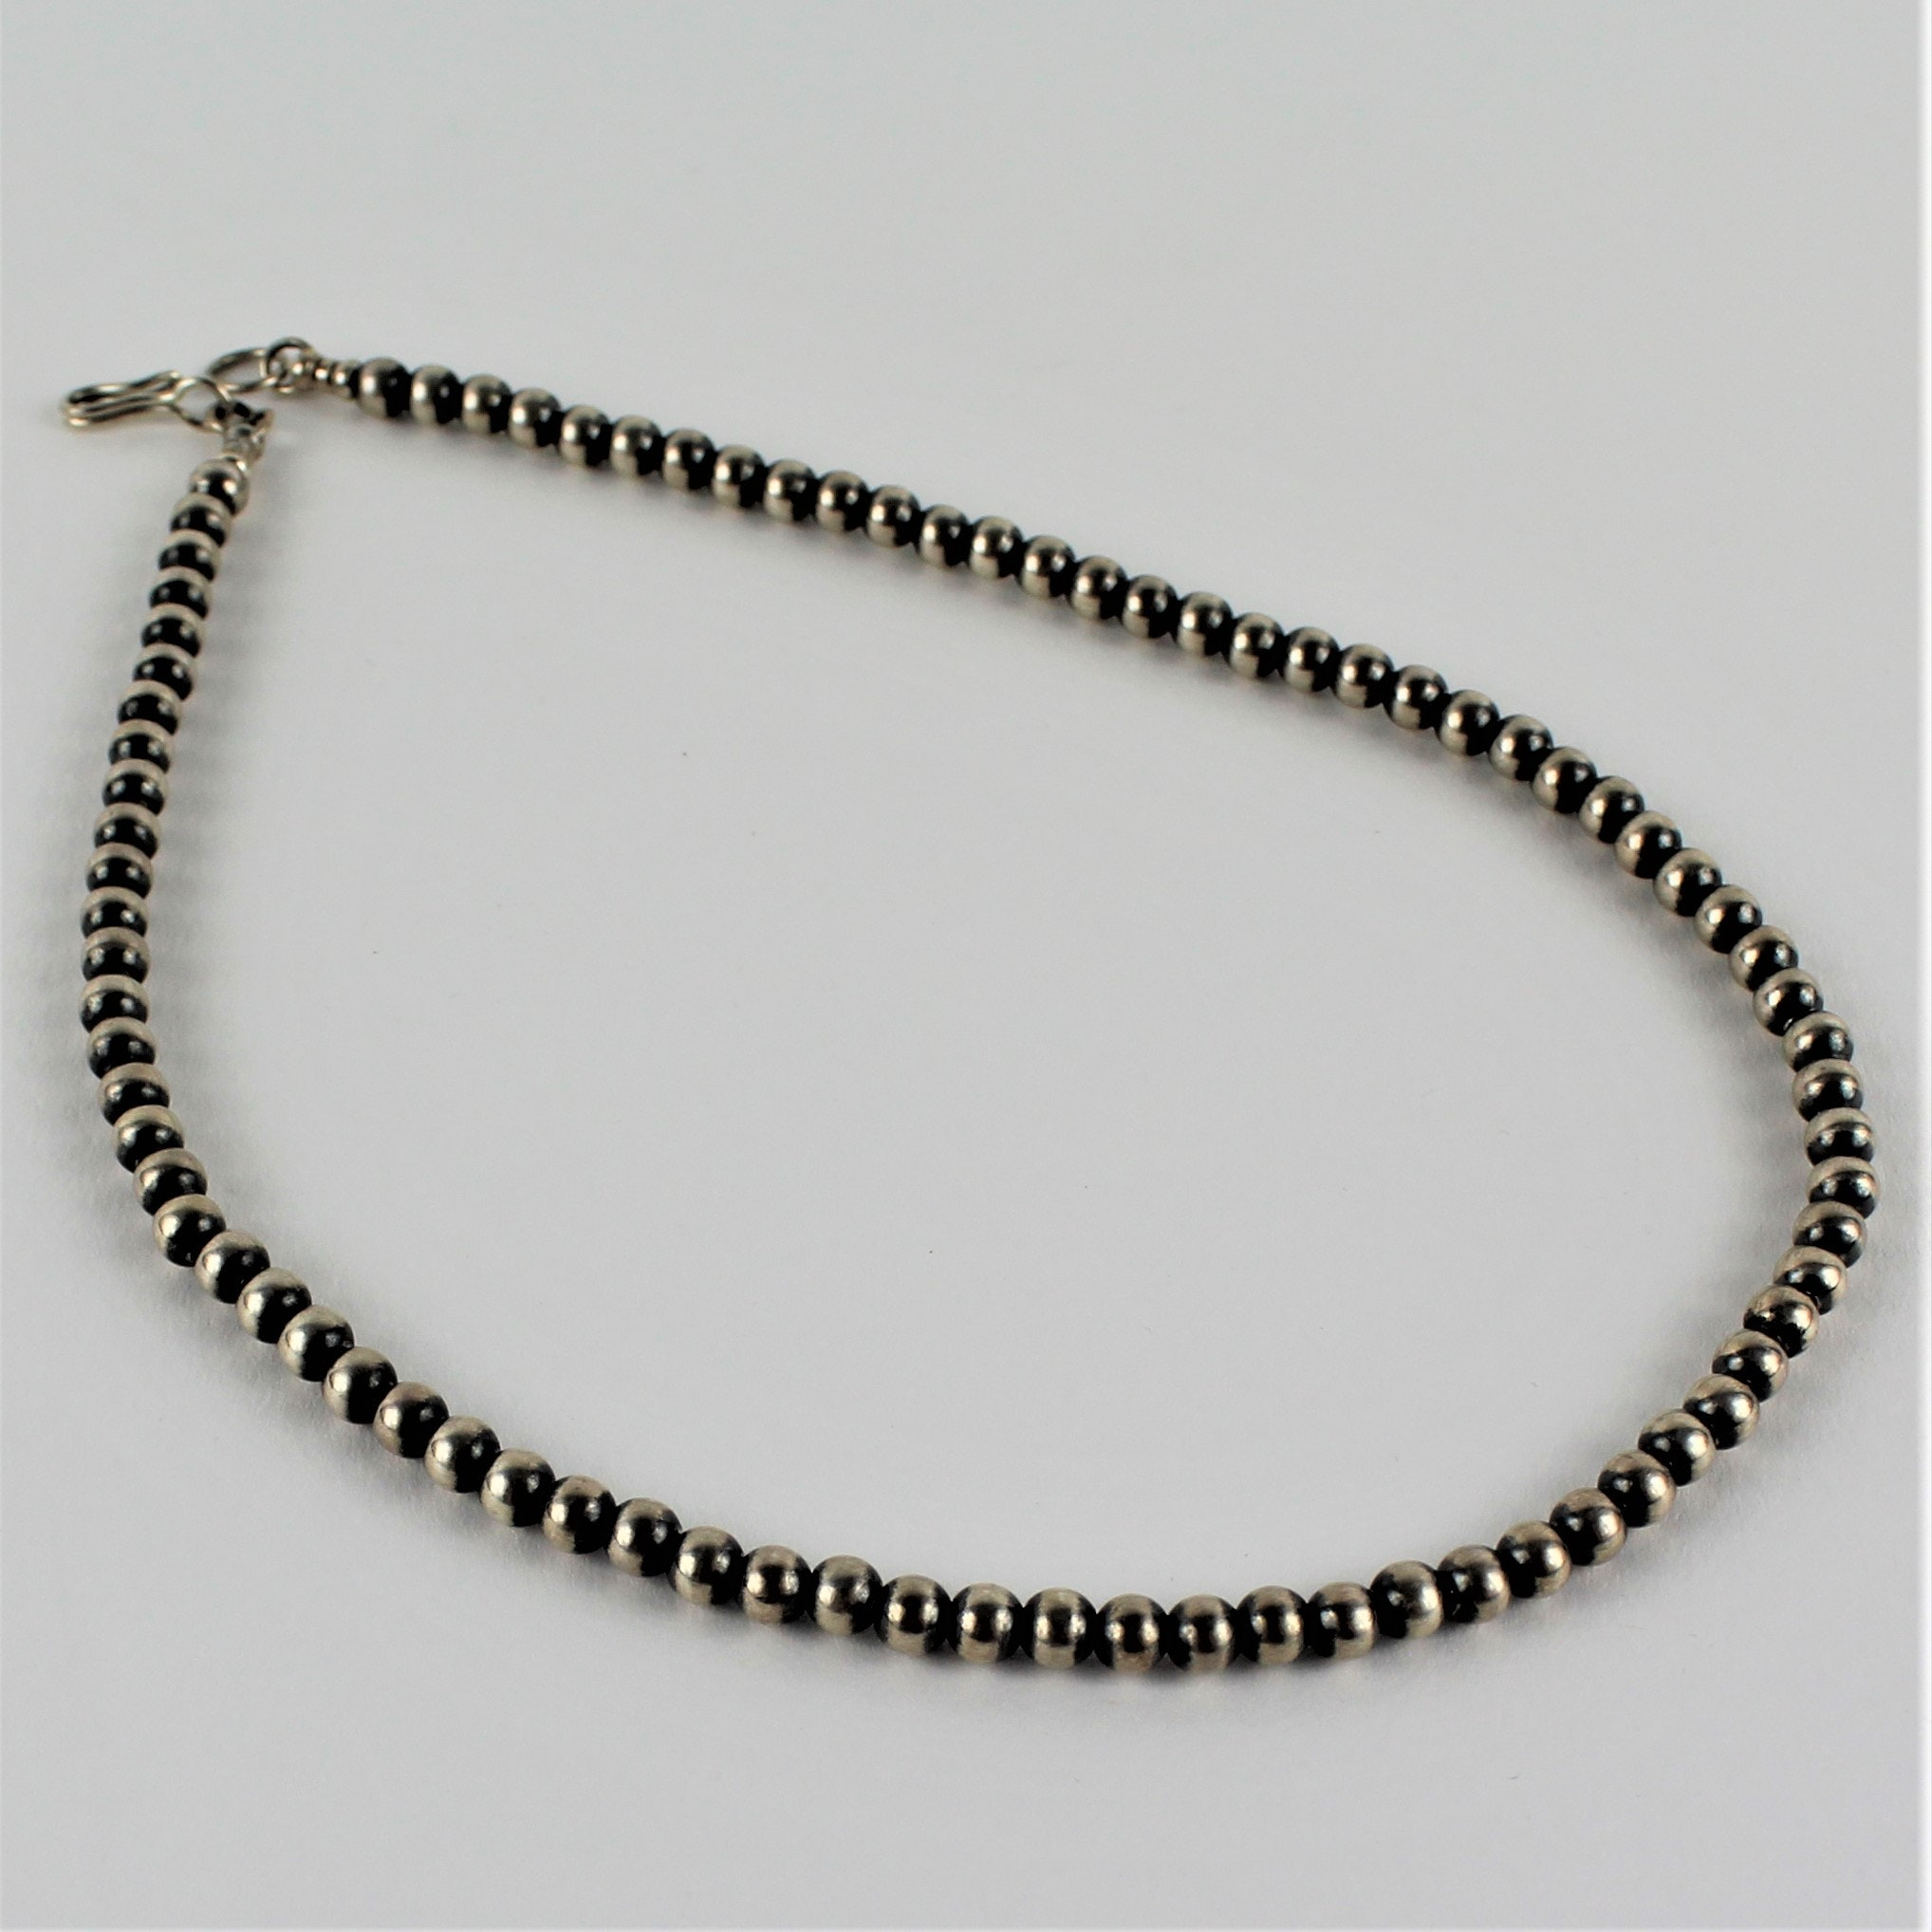 Gertrude Zachary Anglo Southwest Style Sterling Silver Beaded Ball Necklace